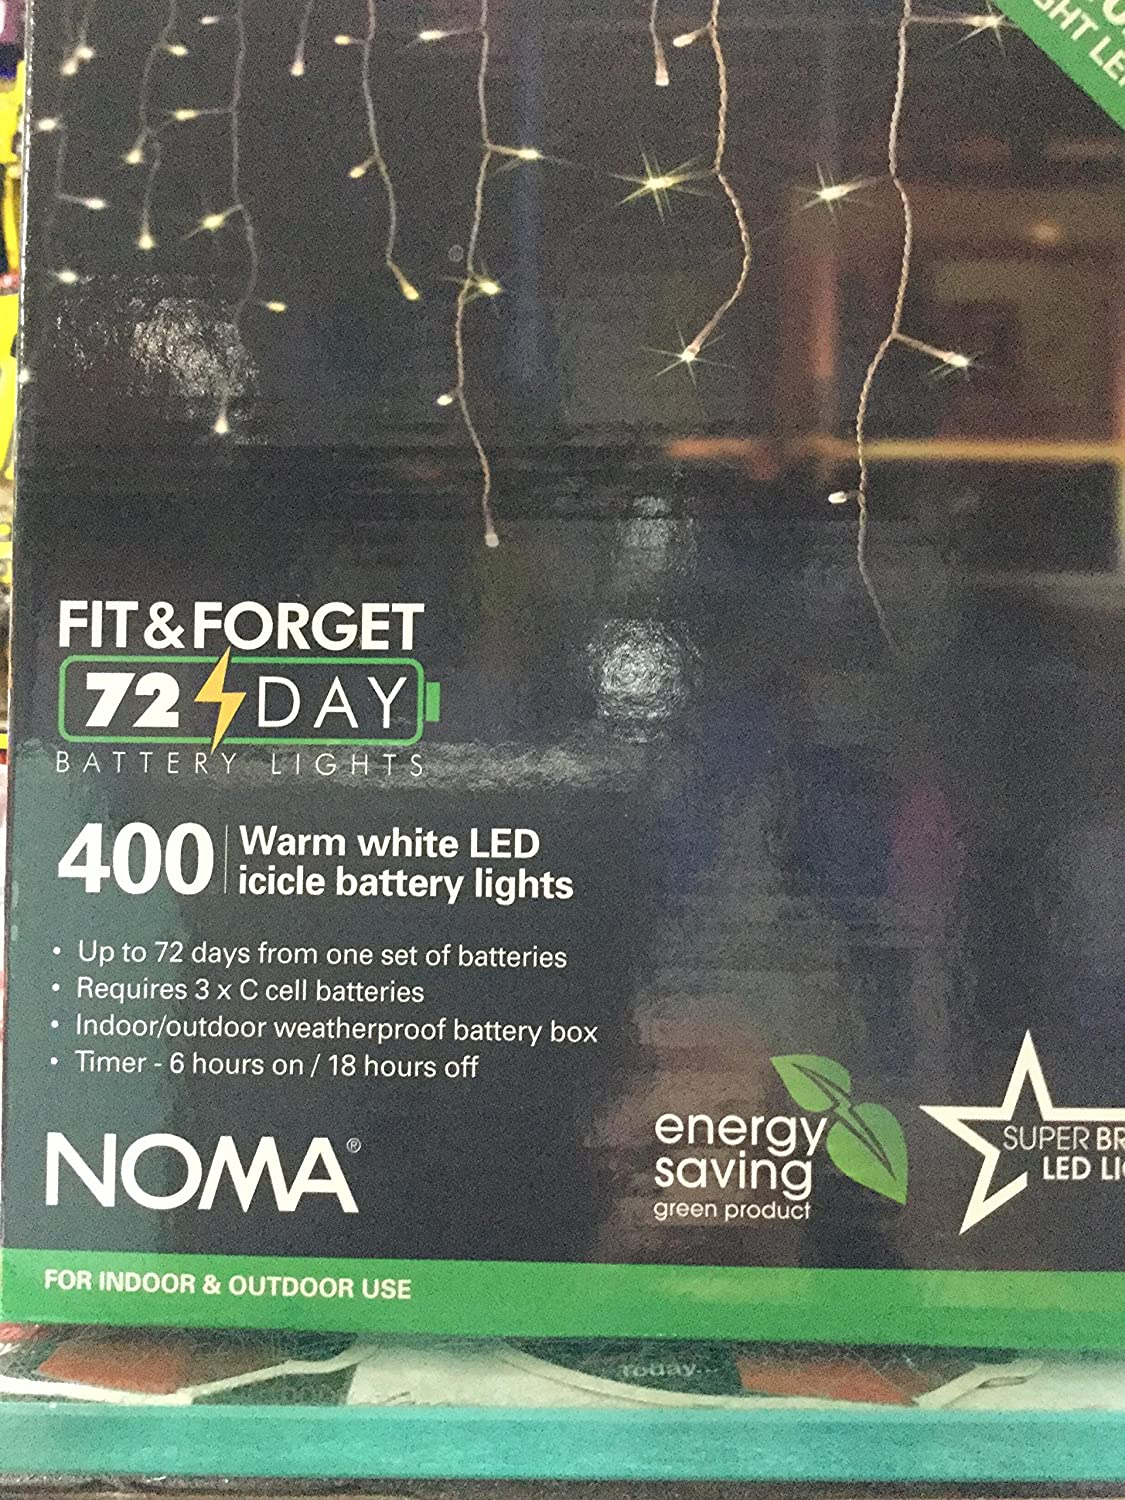 Noma 400 Fit & Forget Battery Multi Effect Icicle Lights Timer - Warm White